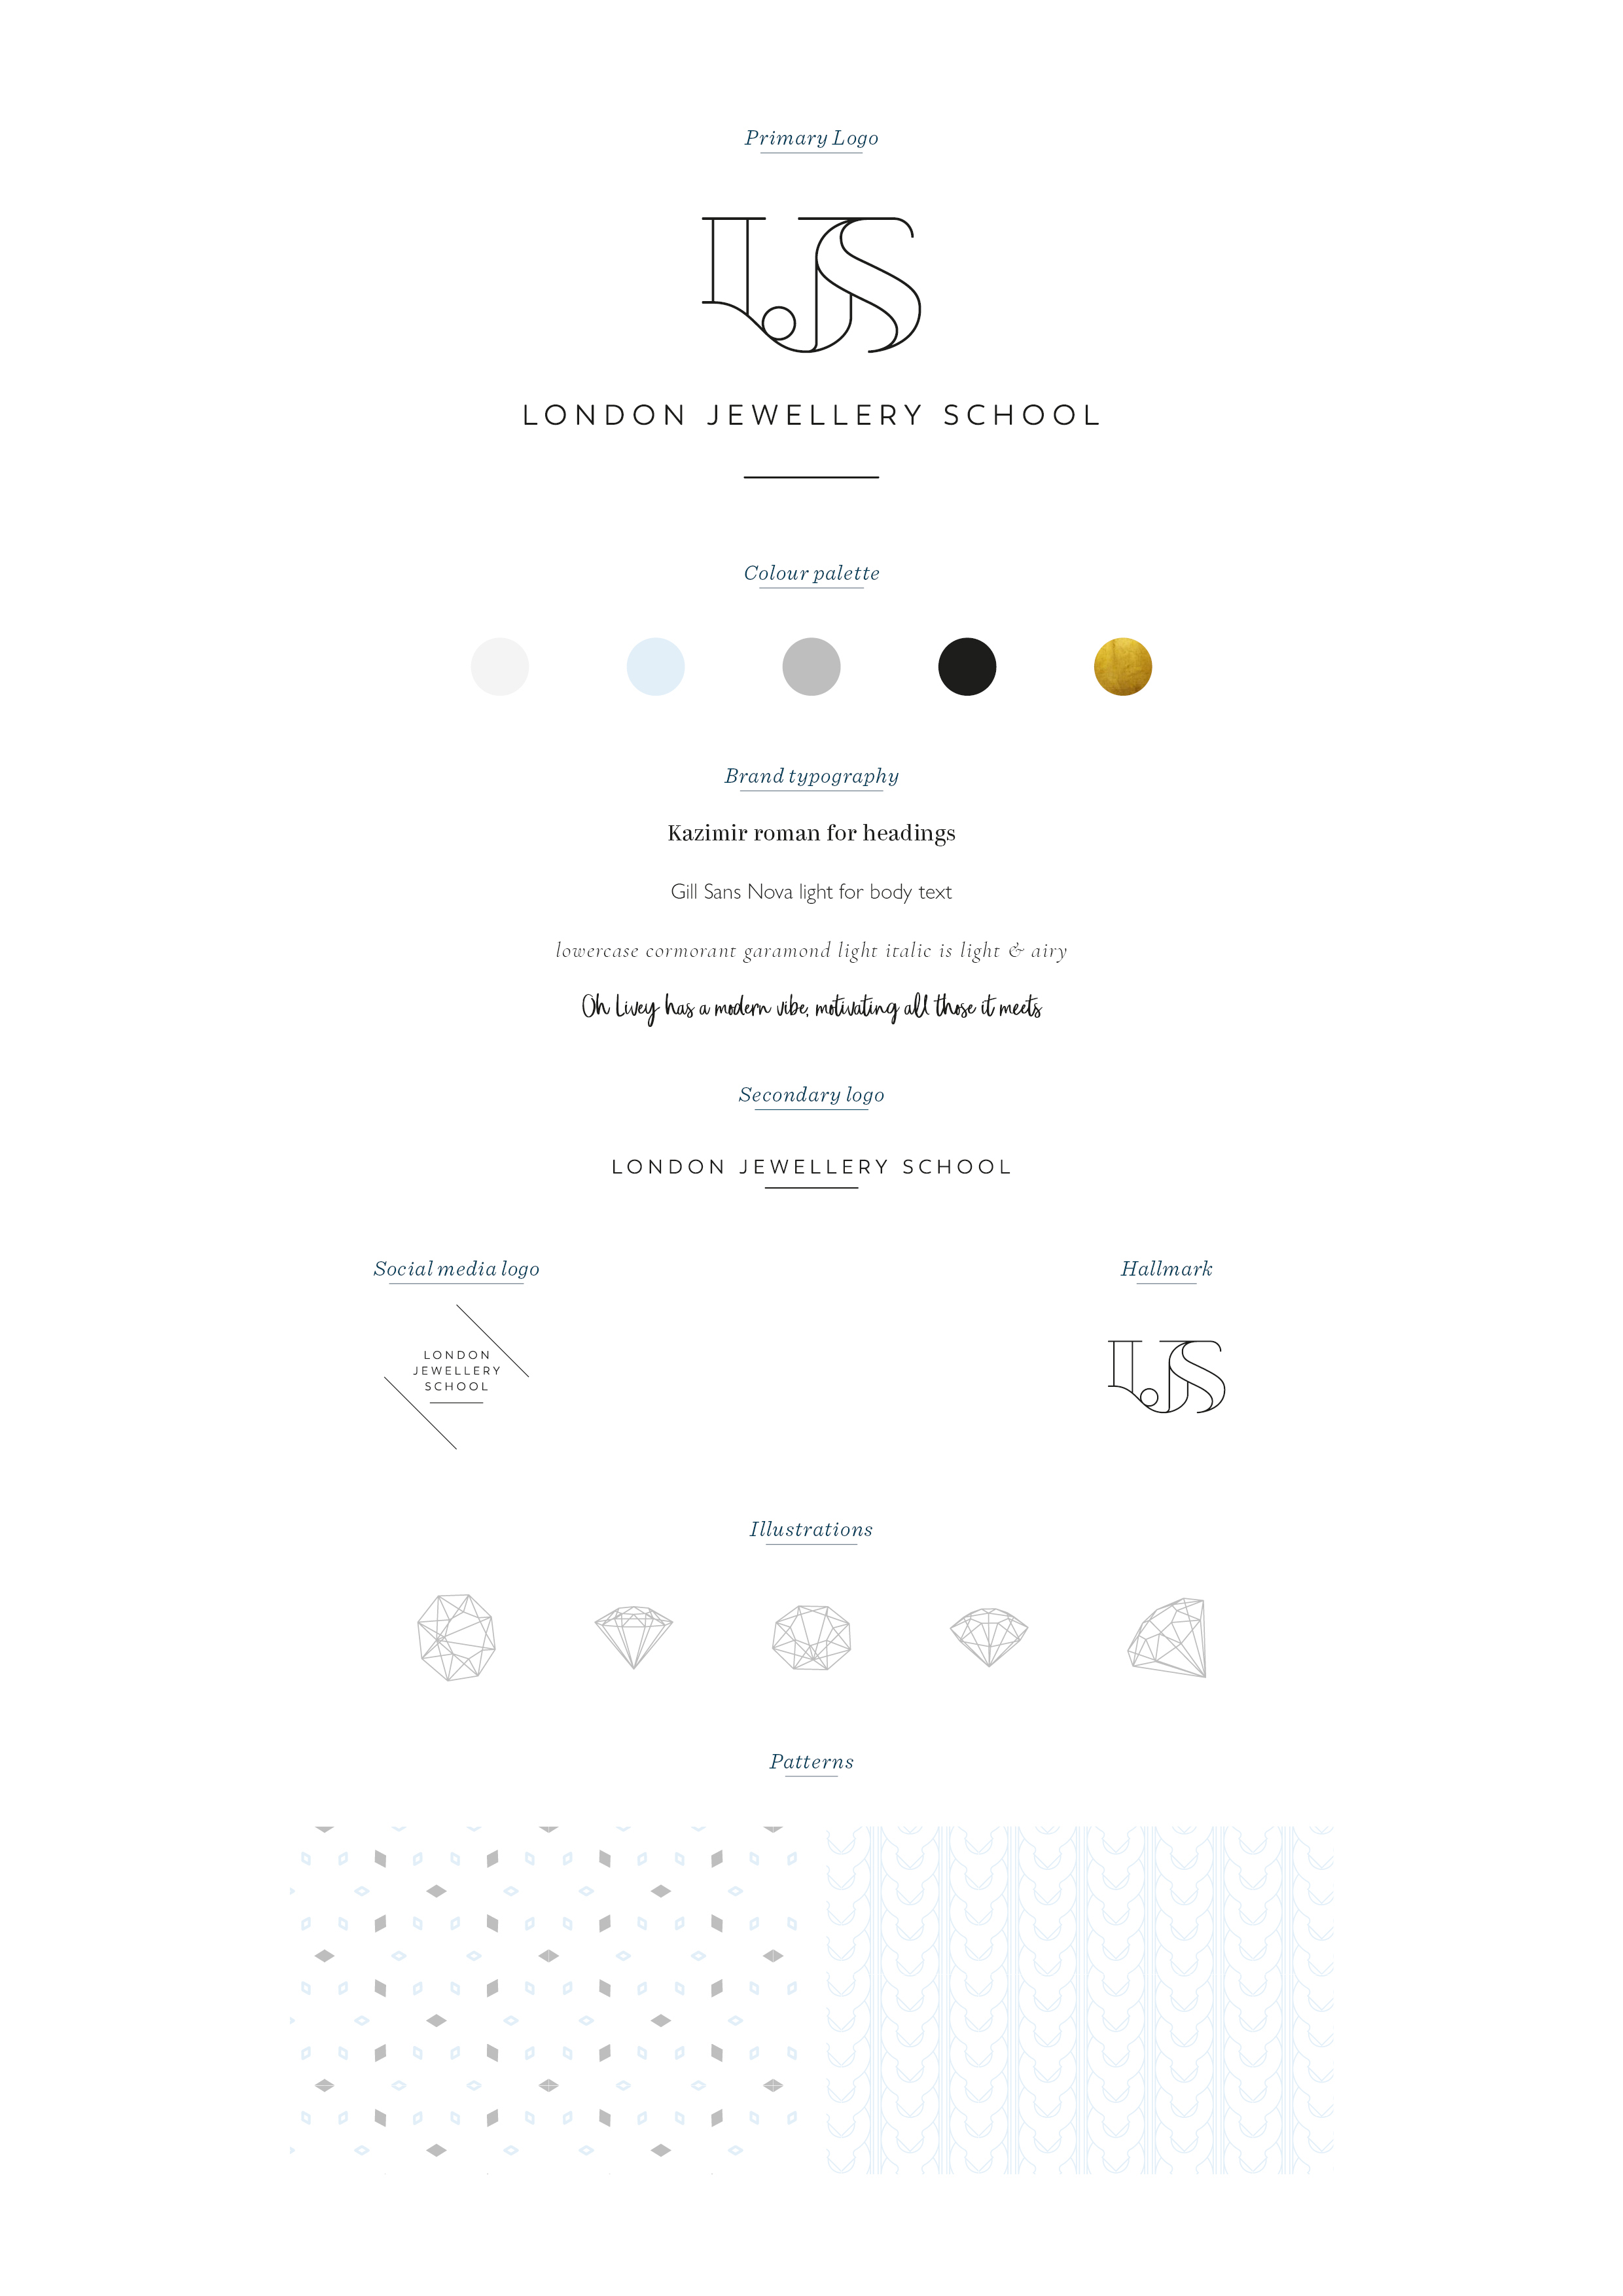 London Jewellery School, logo design and brand identity by Ditto Creative, branding agency in Kent UK